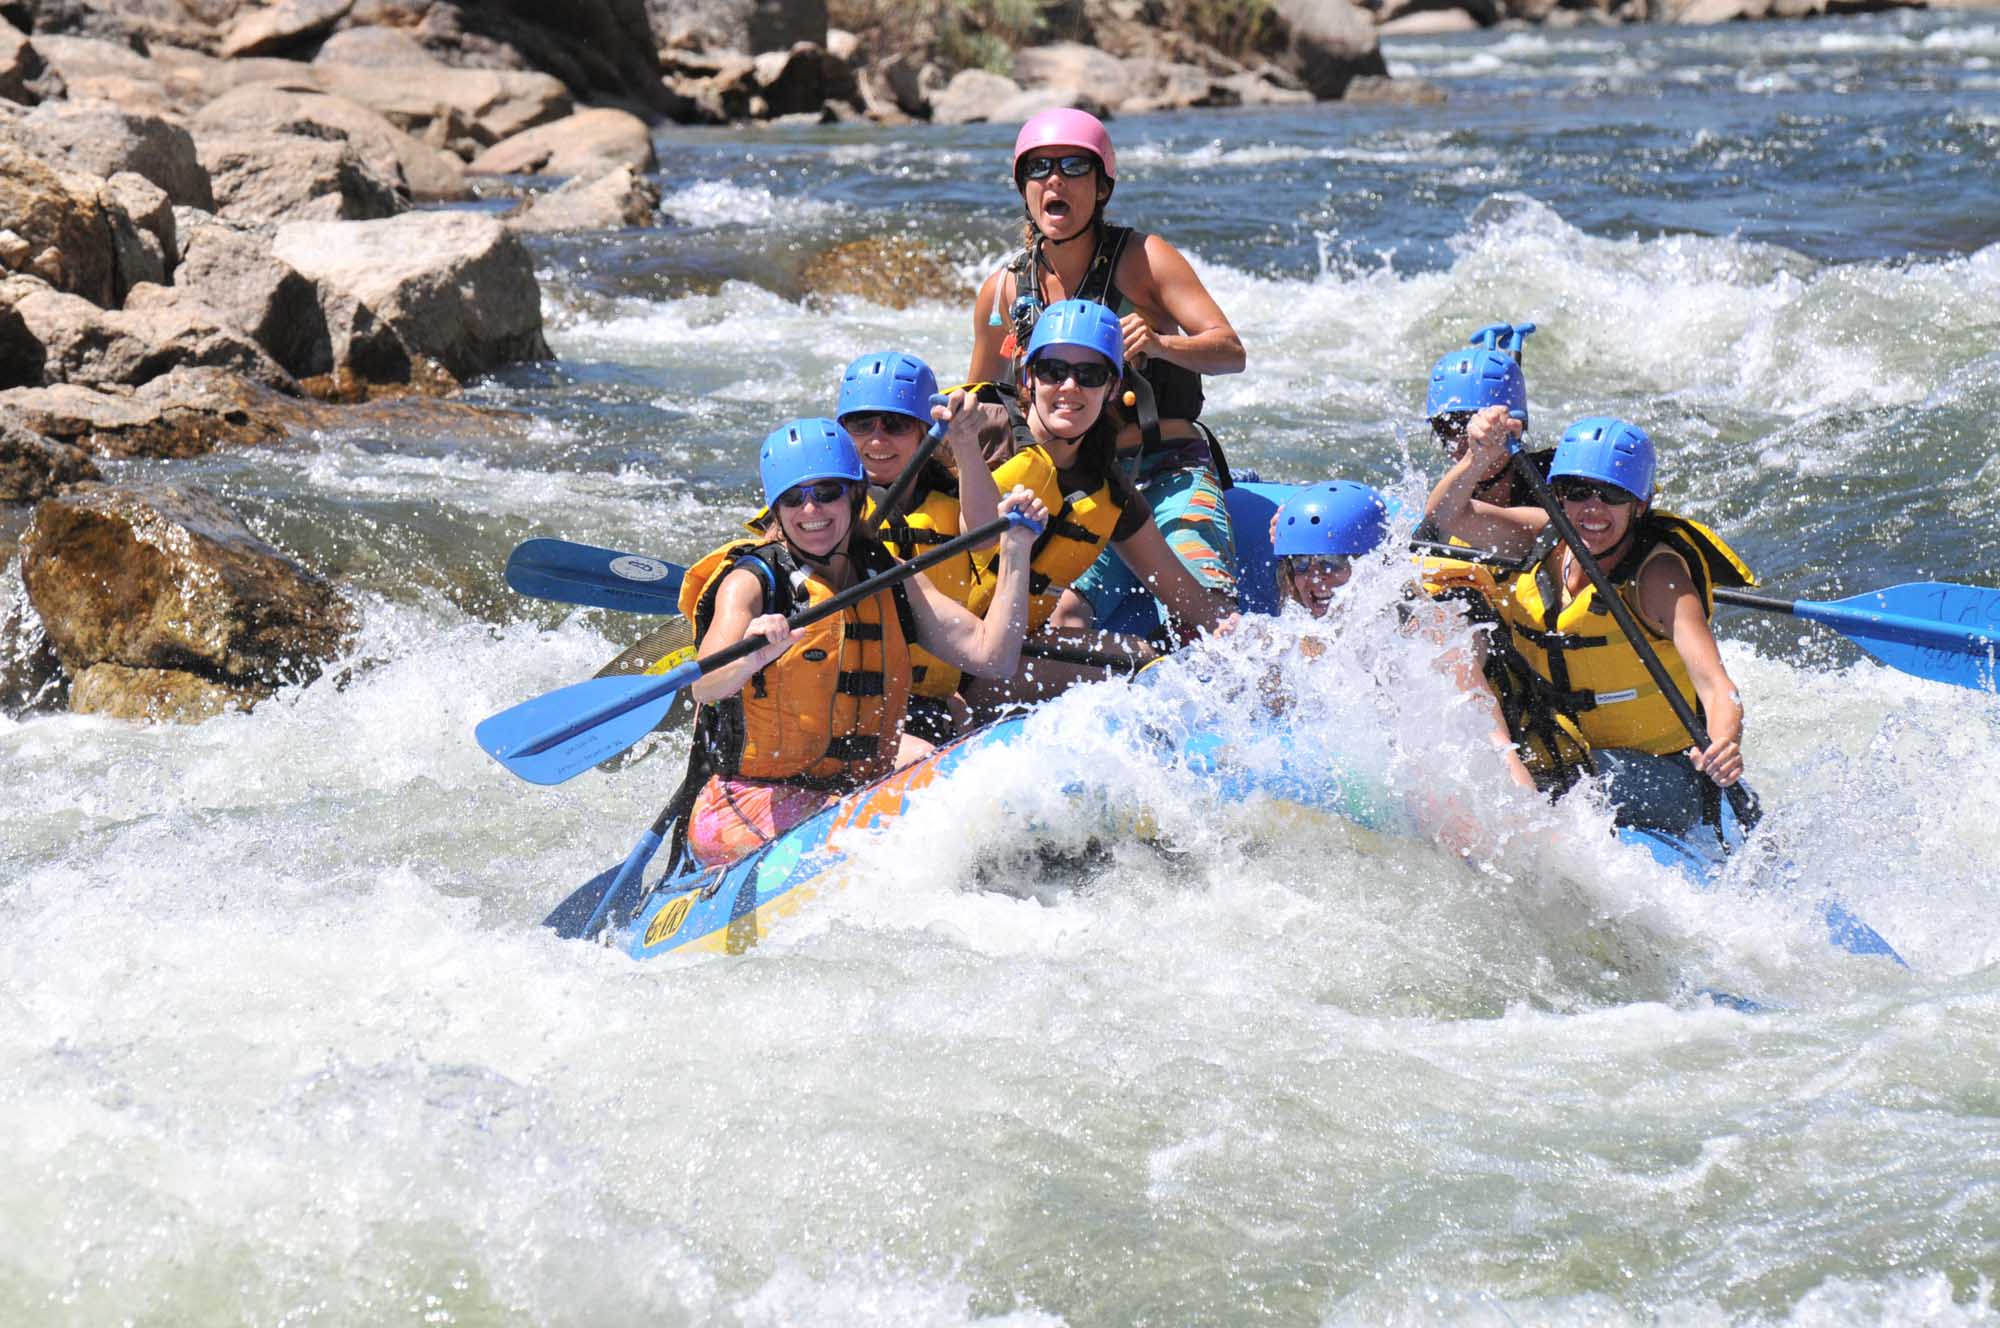 Spaß beim Rafting. – Foto: Adventure Company/Breckenridge Tourism Office